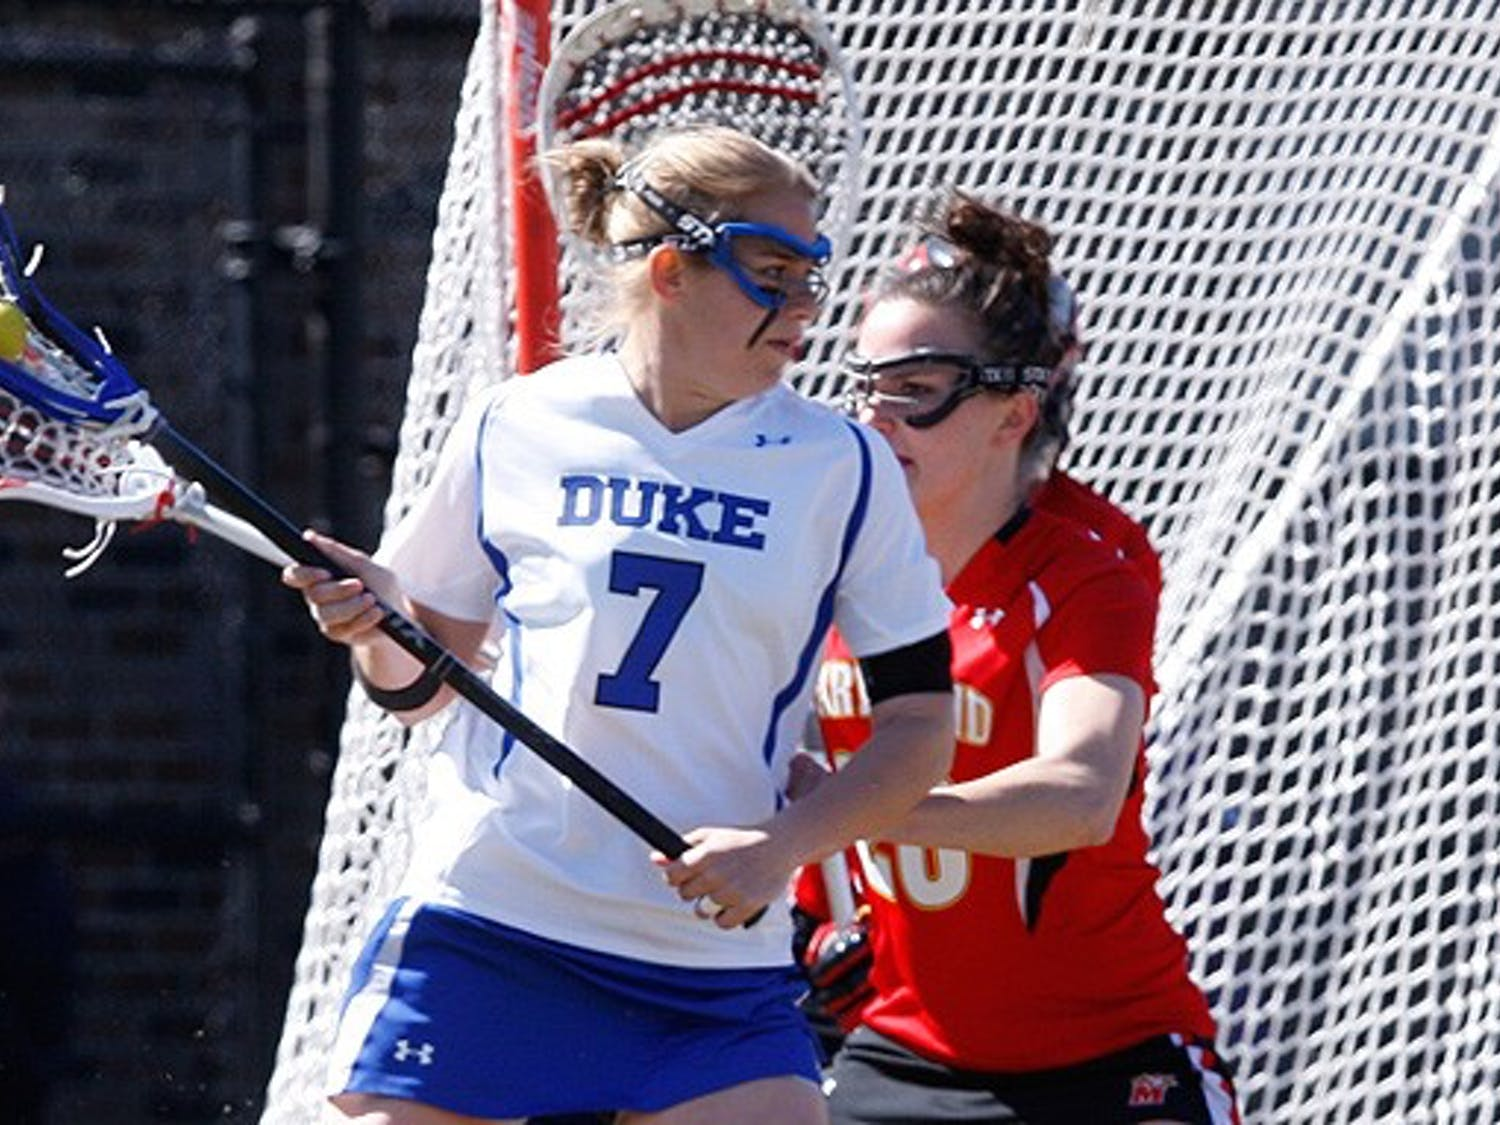 Junior Christie Kaestner could do nothing to help Duke's 14-4 loss to North Carolina. The Blue Devils next play Brown at home May 9.